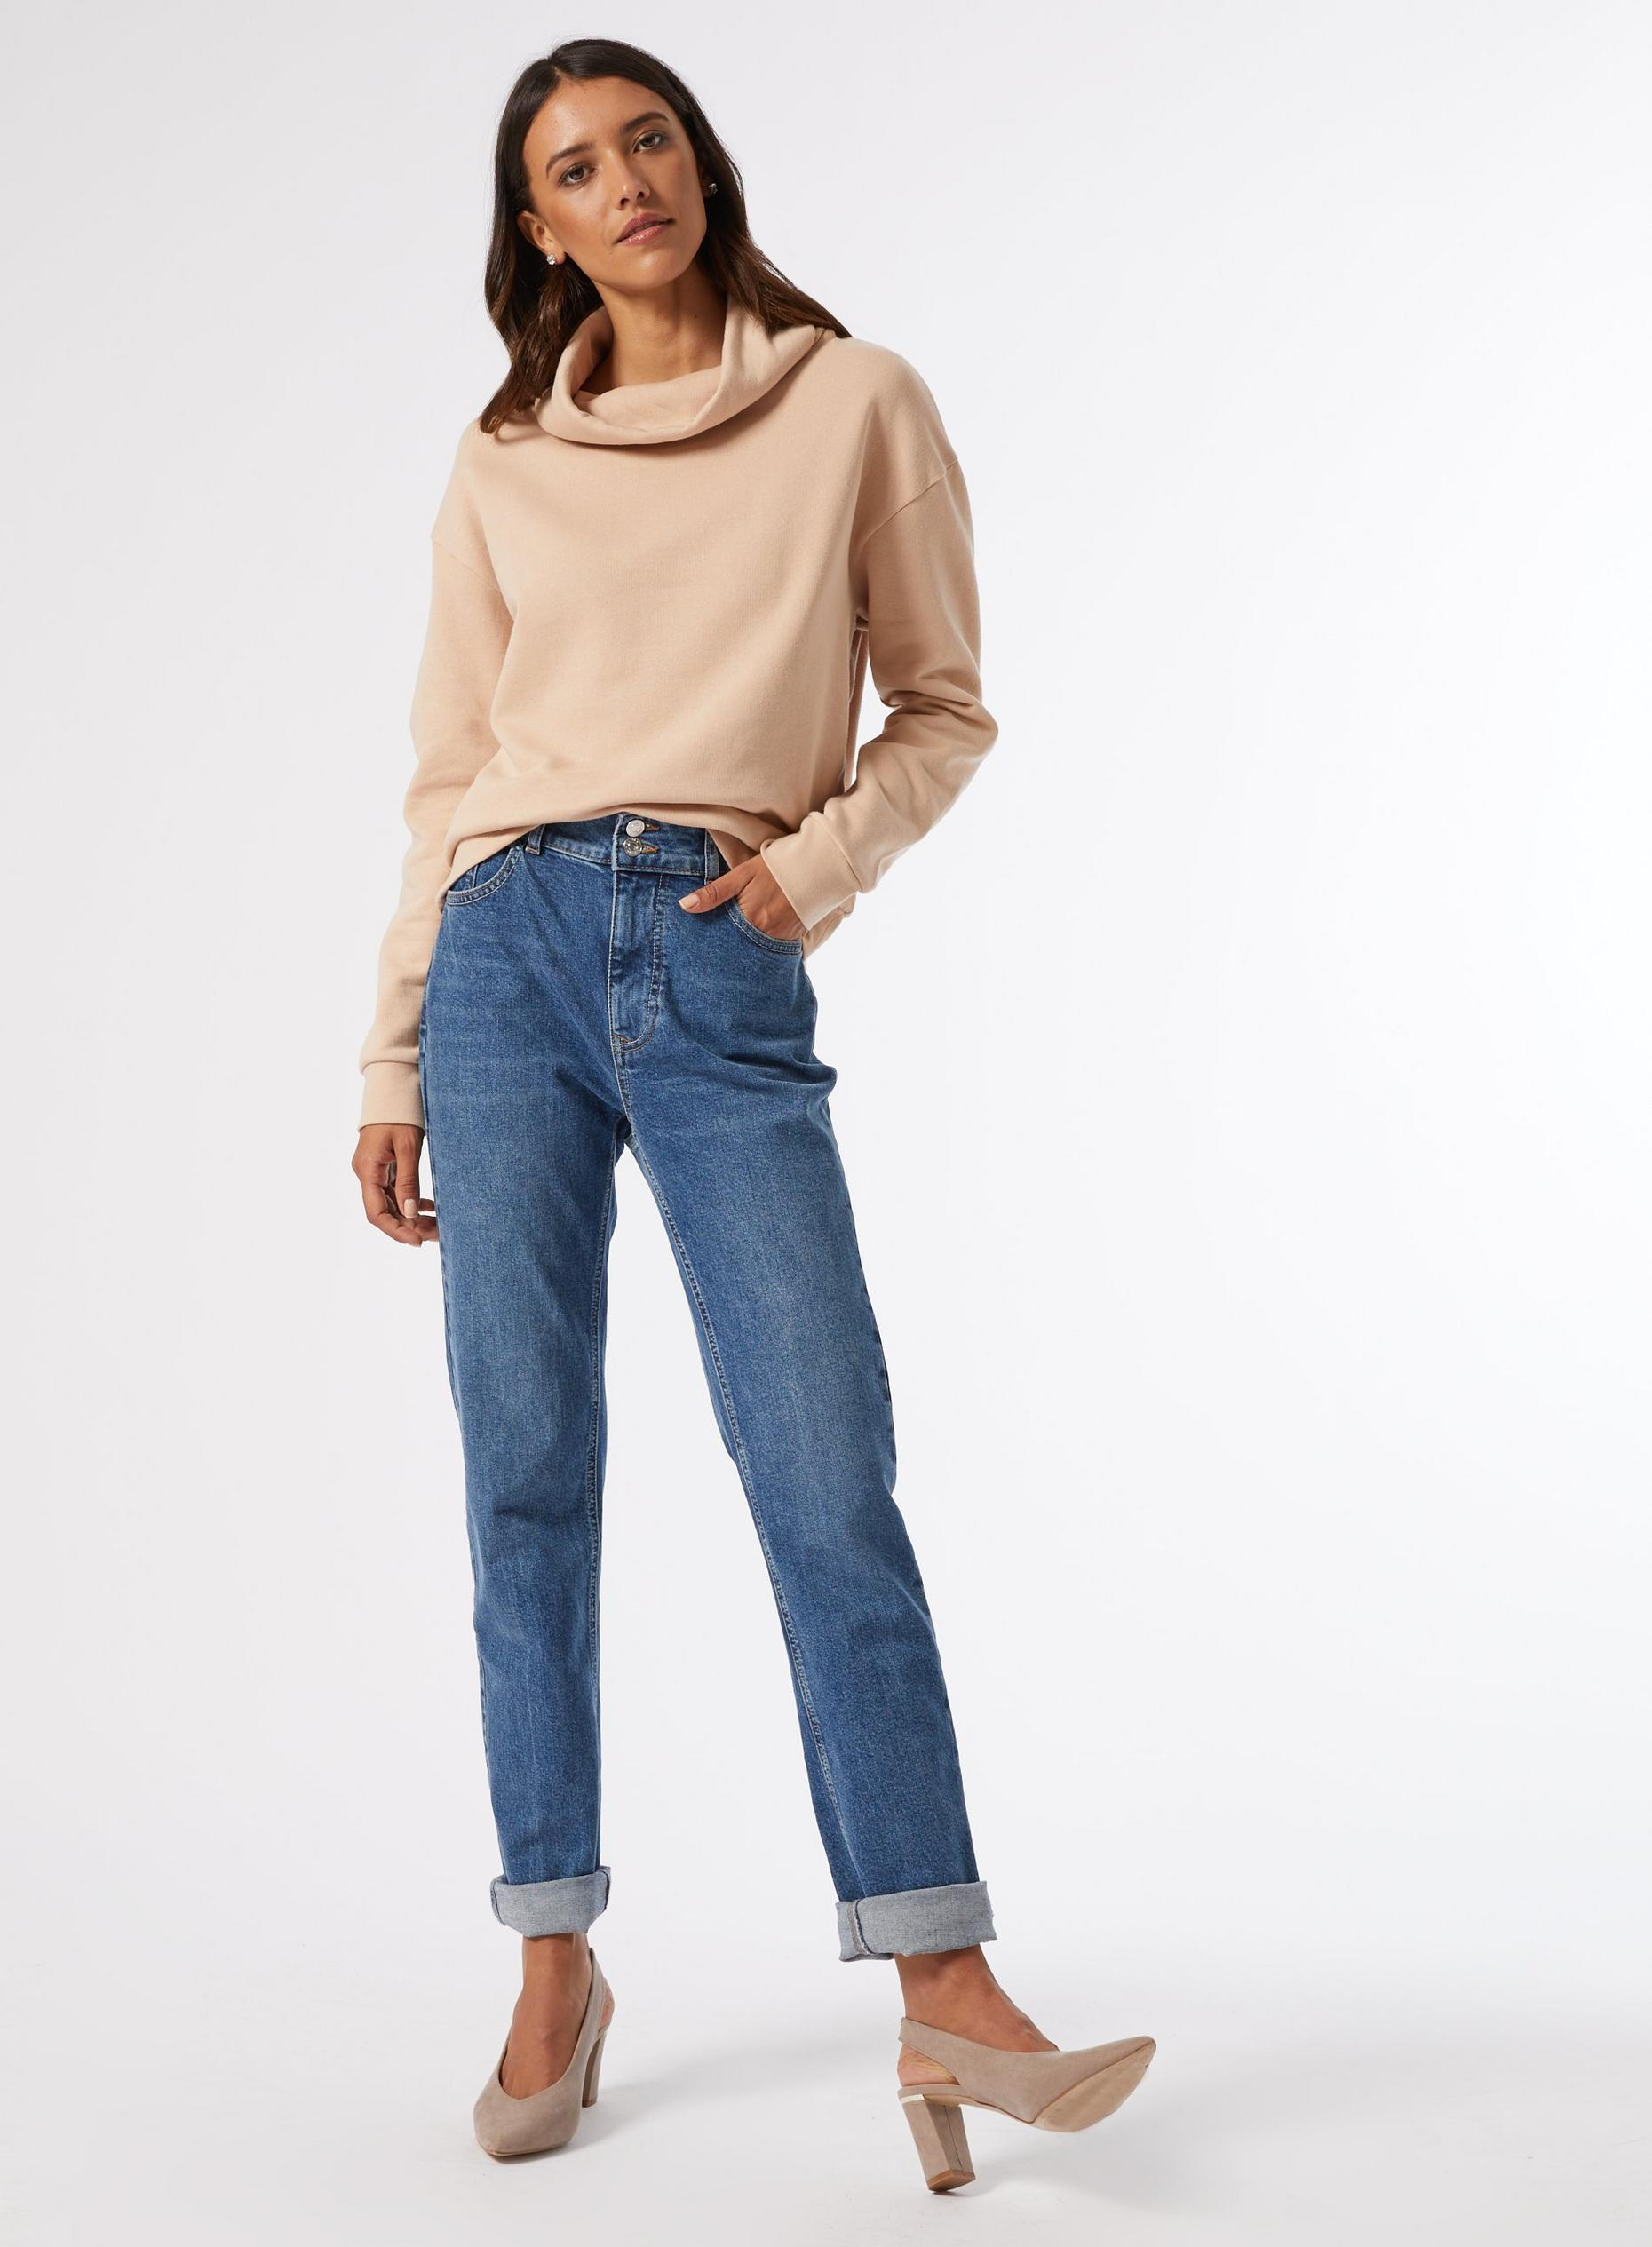 Camel Funnel Neck Sweatshirt